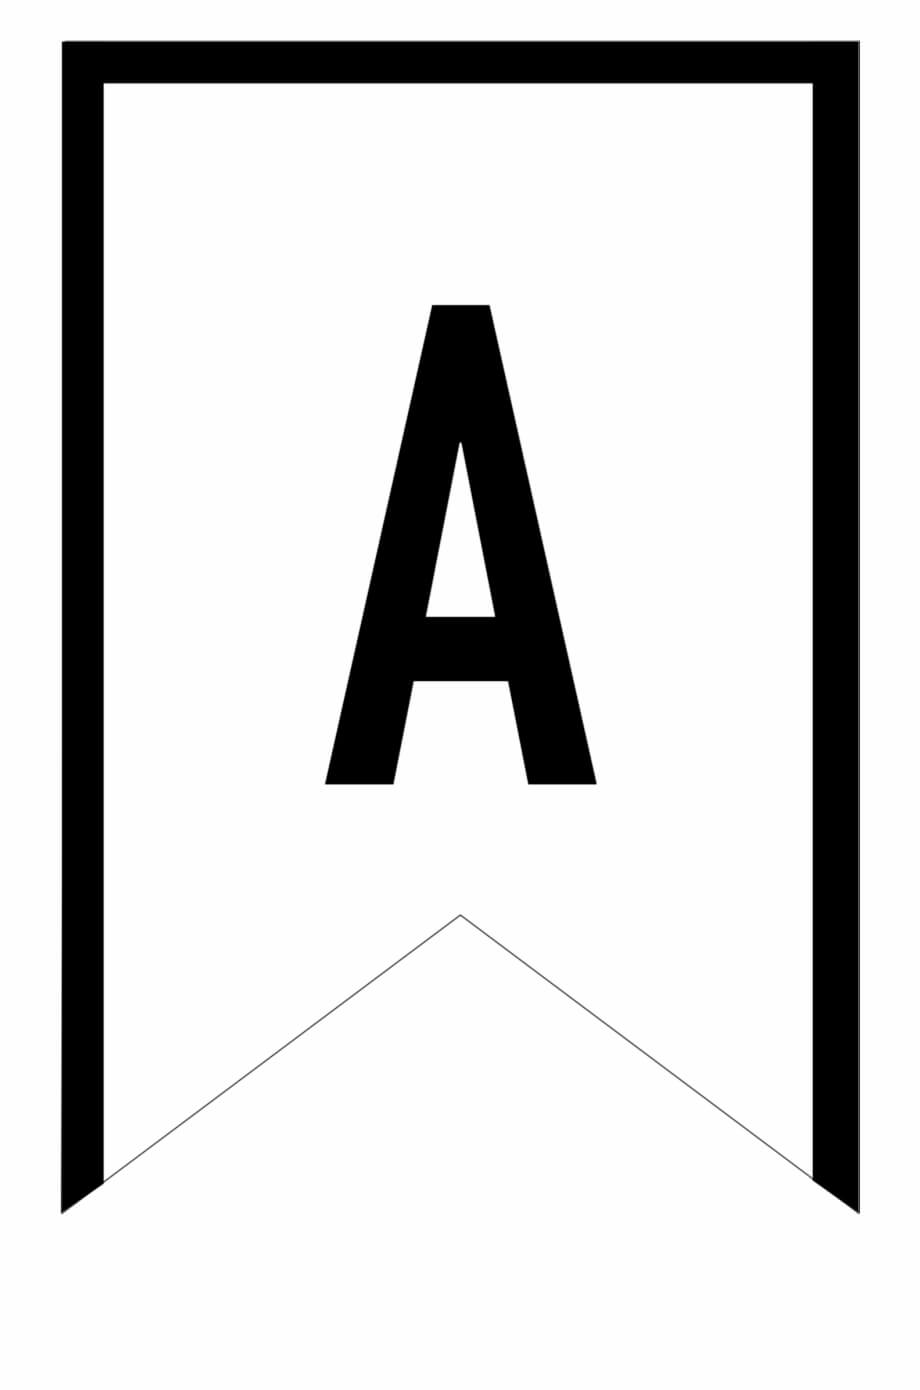 Banner Templates Free Printable Abc Letters - Printable Regarding Free Letter Templates For Banners